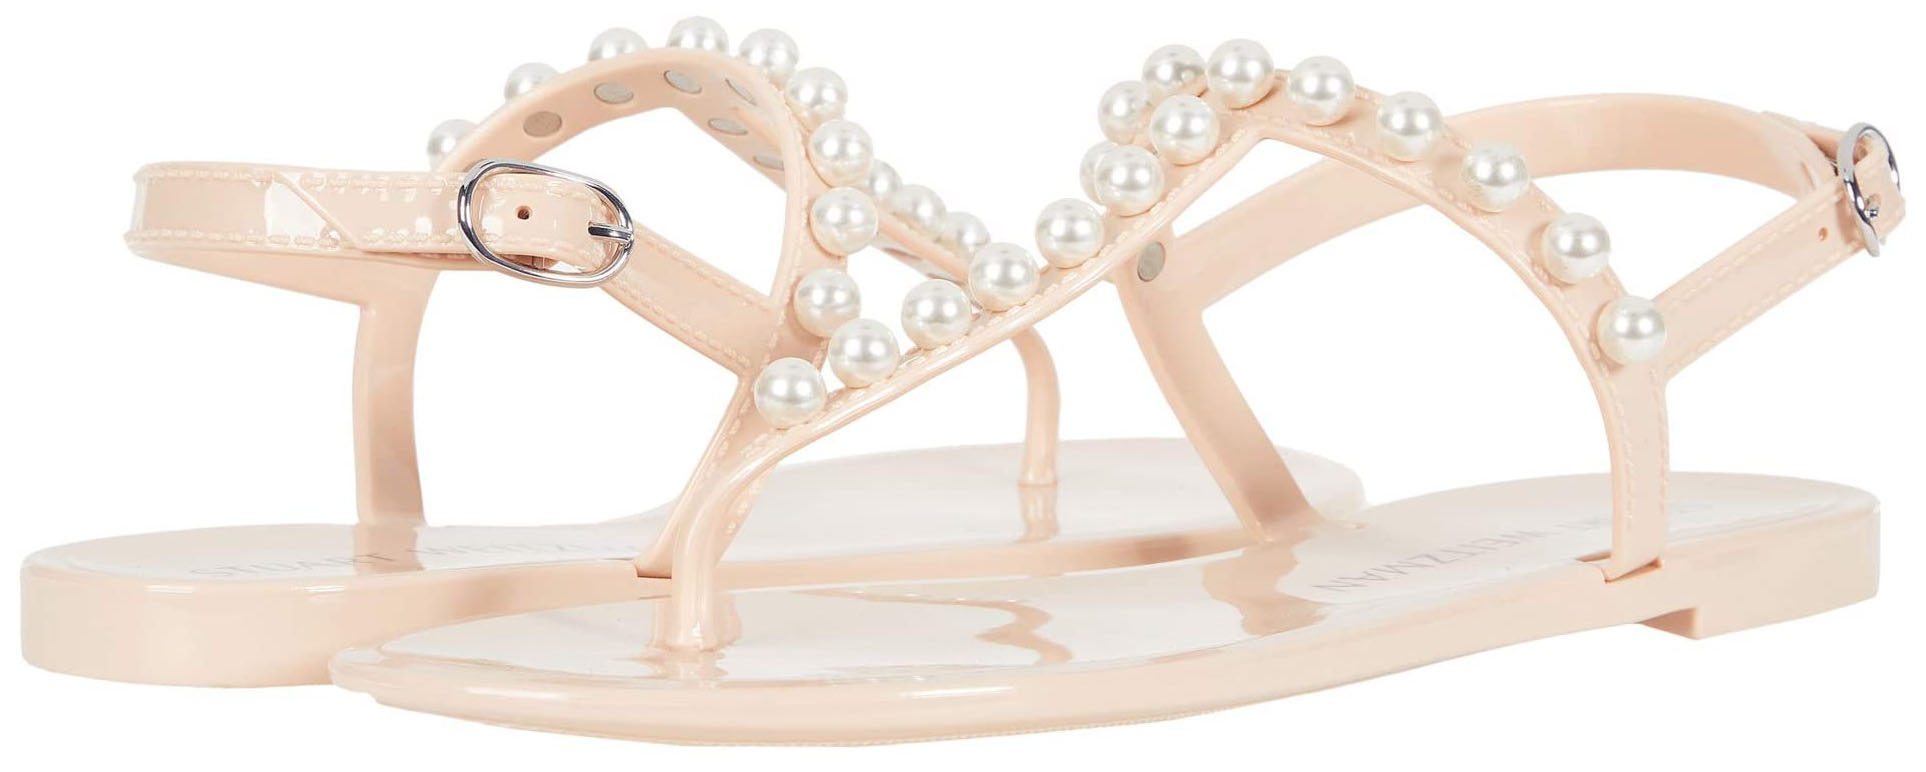 Jelly sandals like Stuart Weitzman's Goldie are perfect for rainy summer days